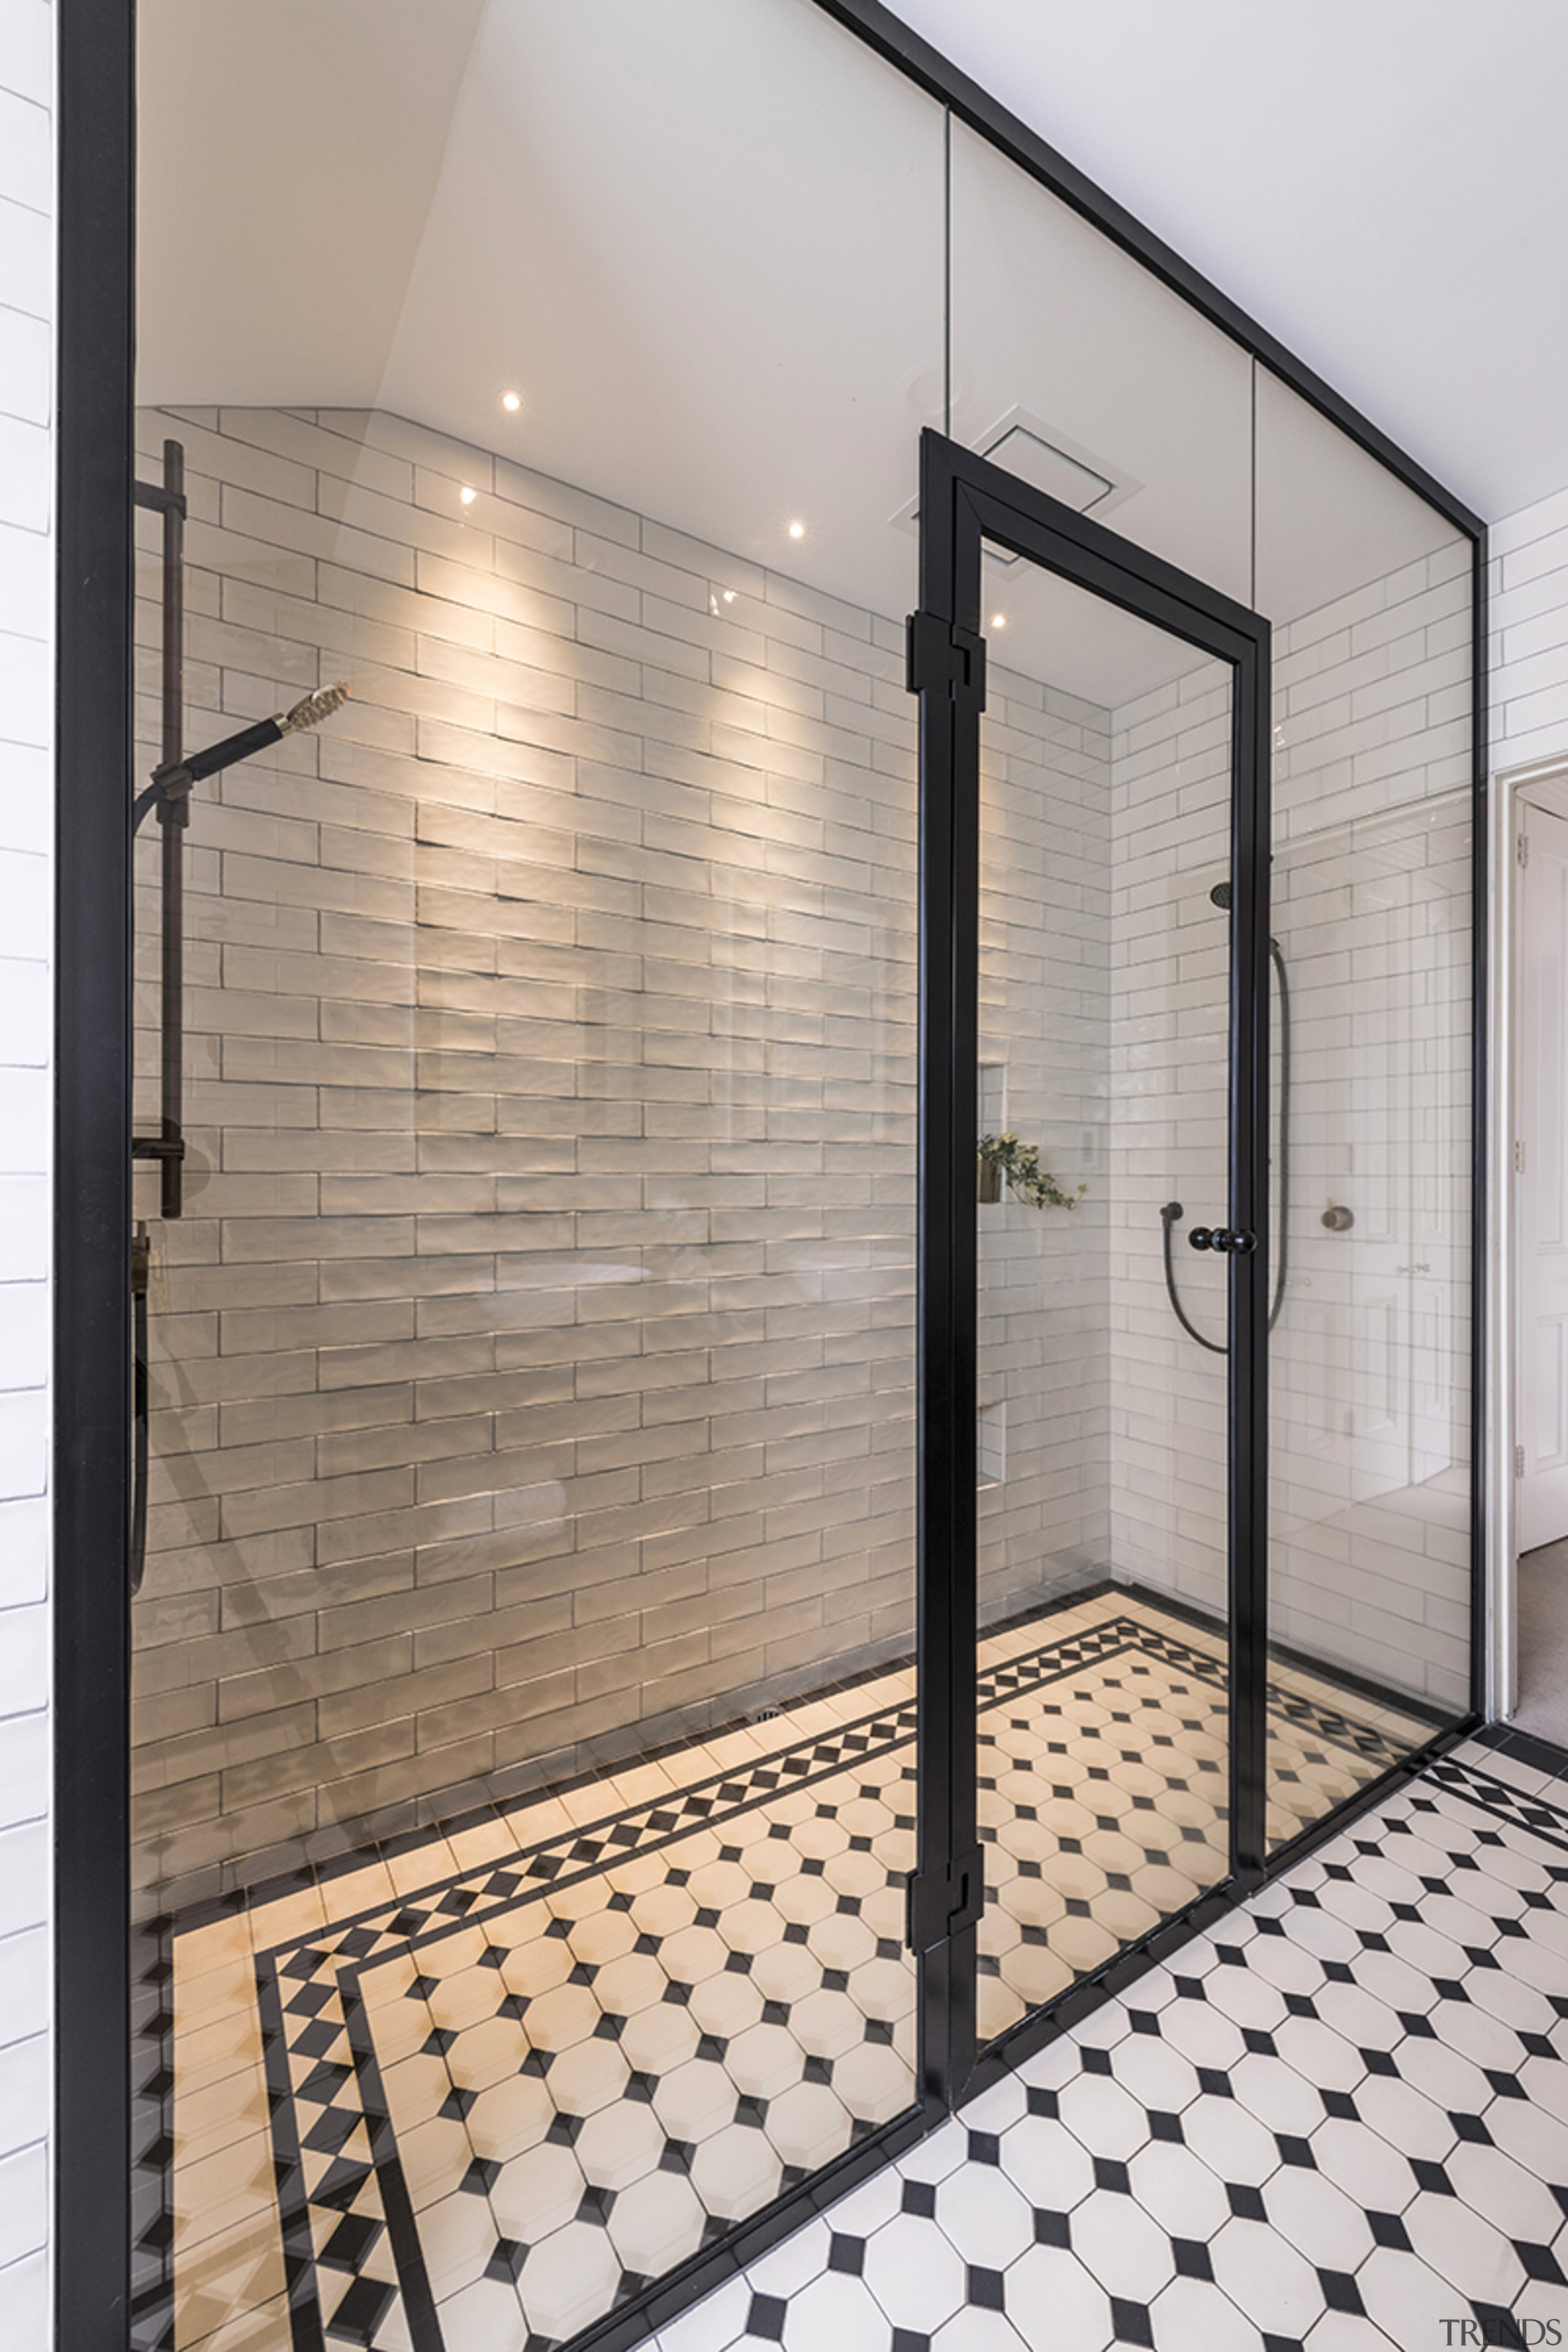 The black metal-framed shower stall is a feature gray